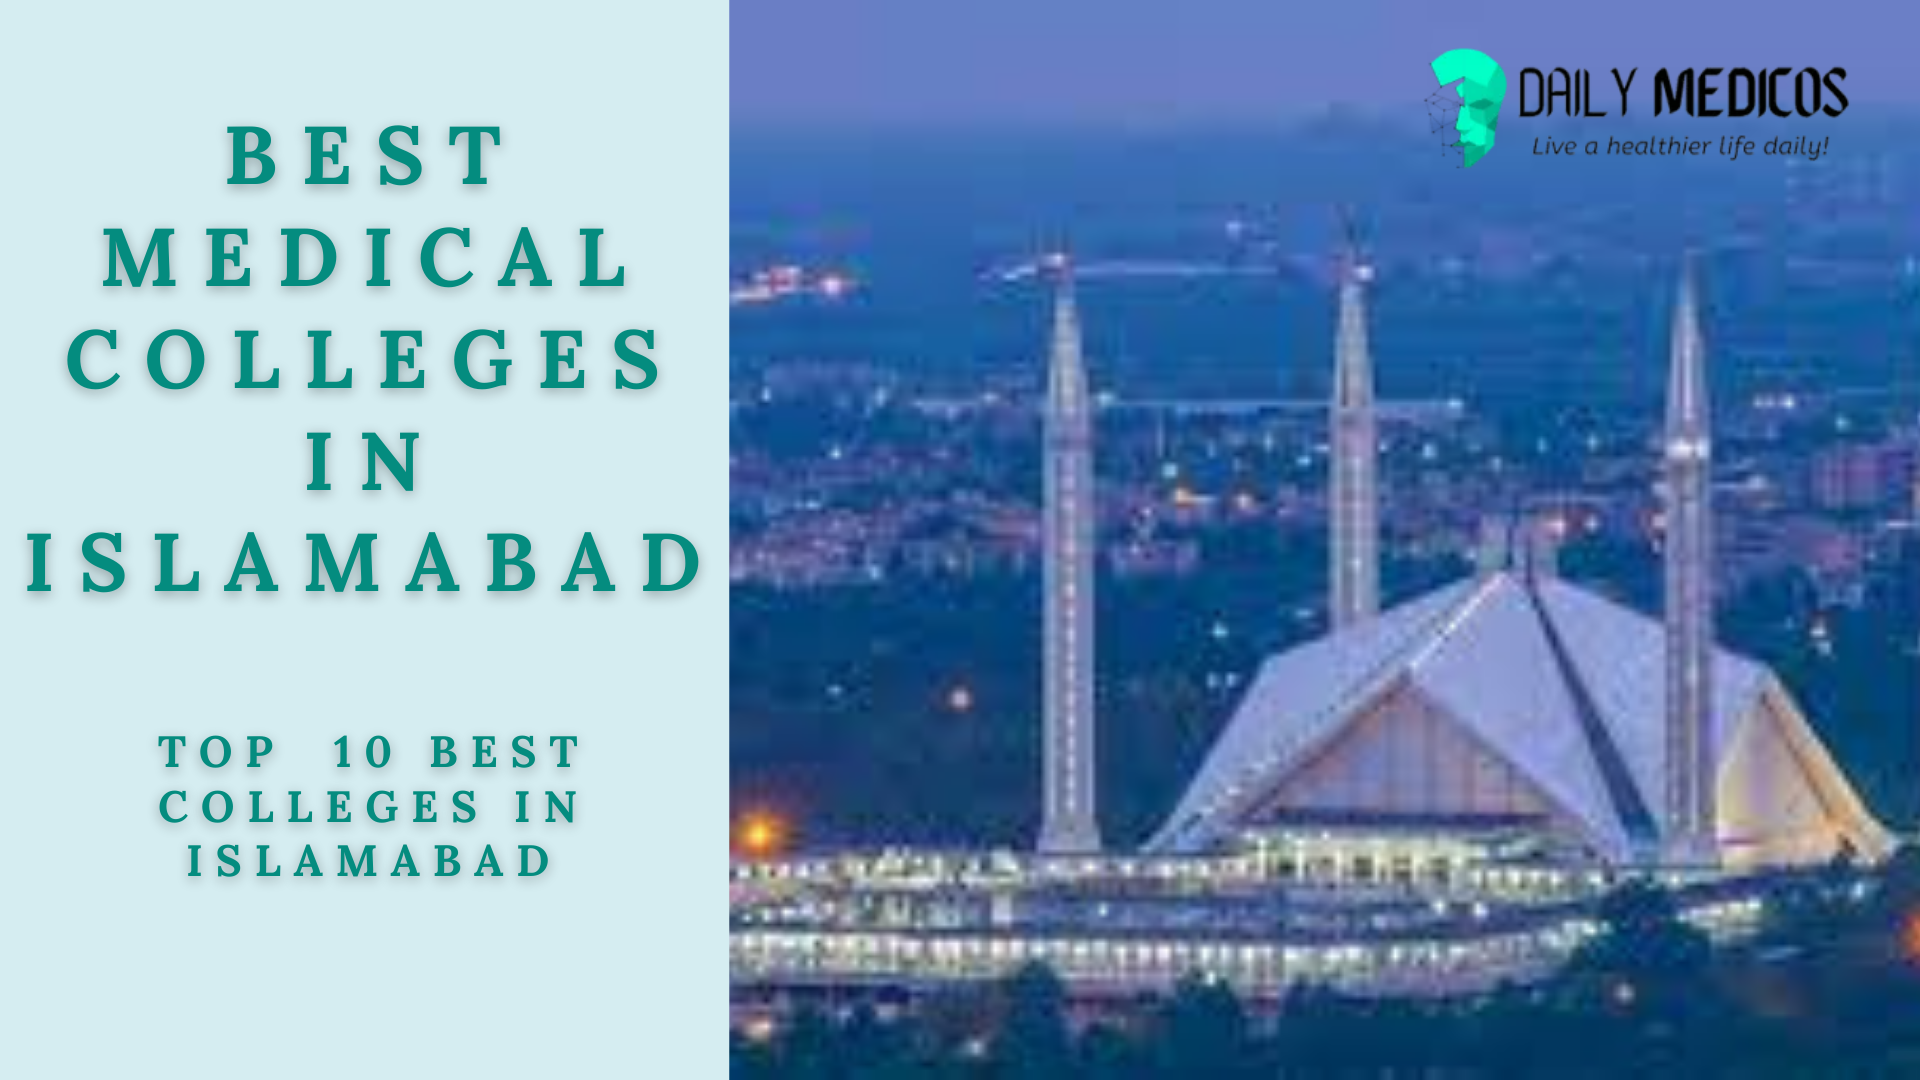 The Top 10 Best Medical Colleges In Islamabad [Detailed Guide] 1 - Daily Medicos